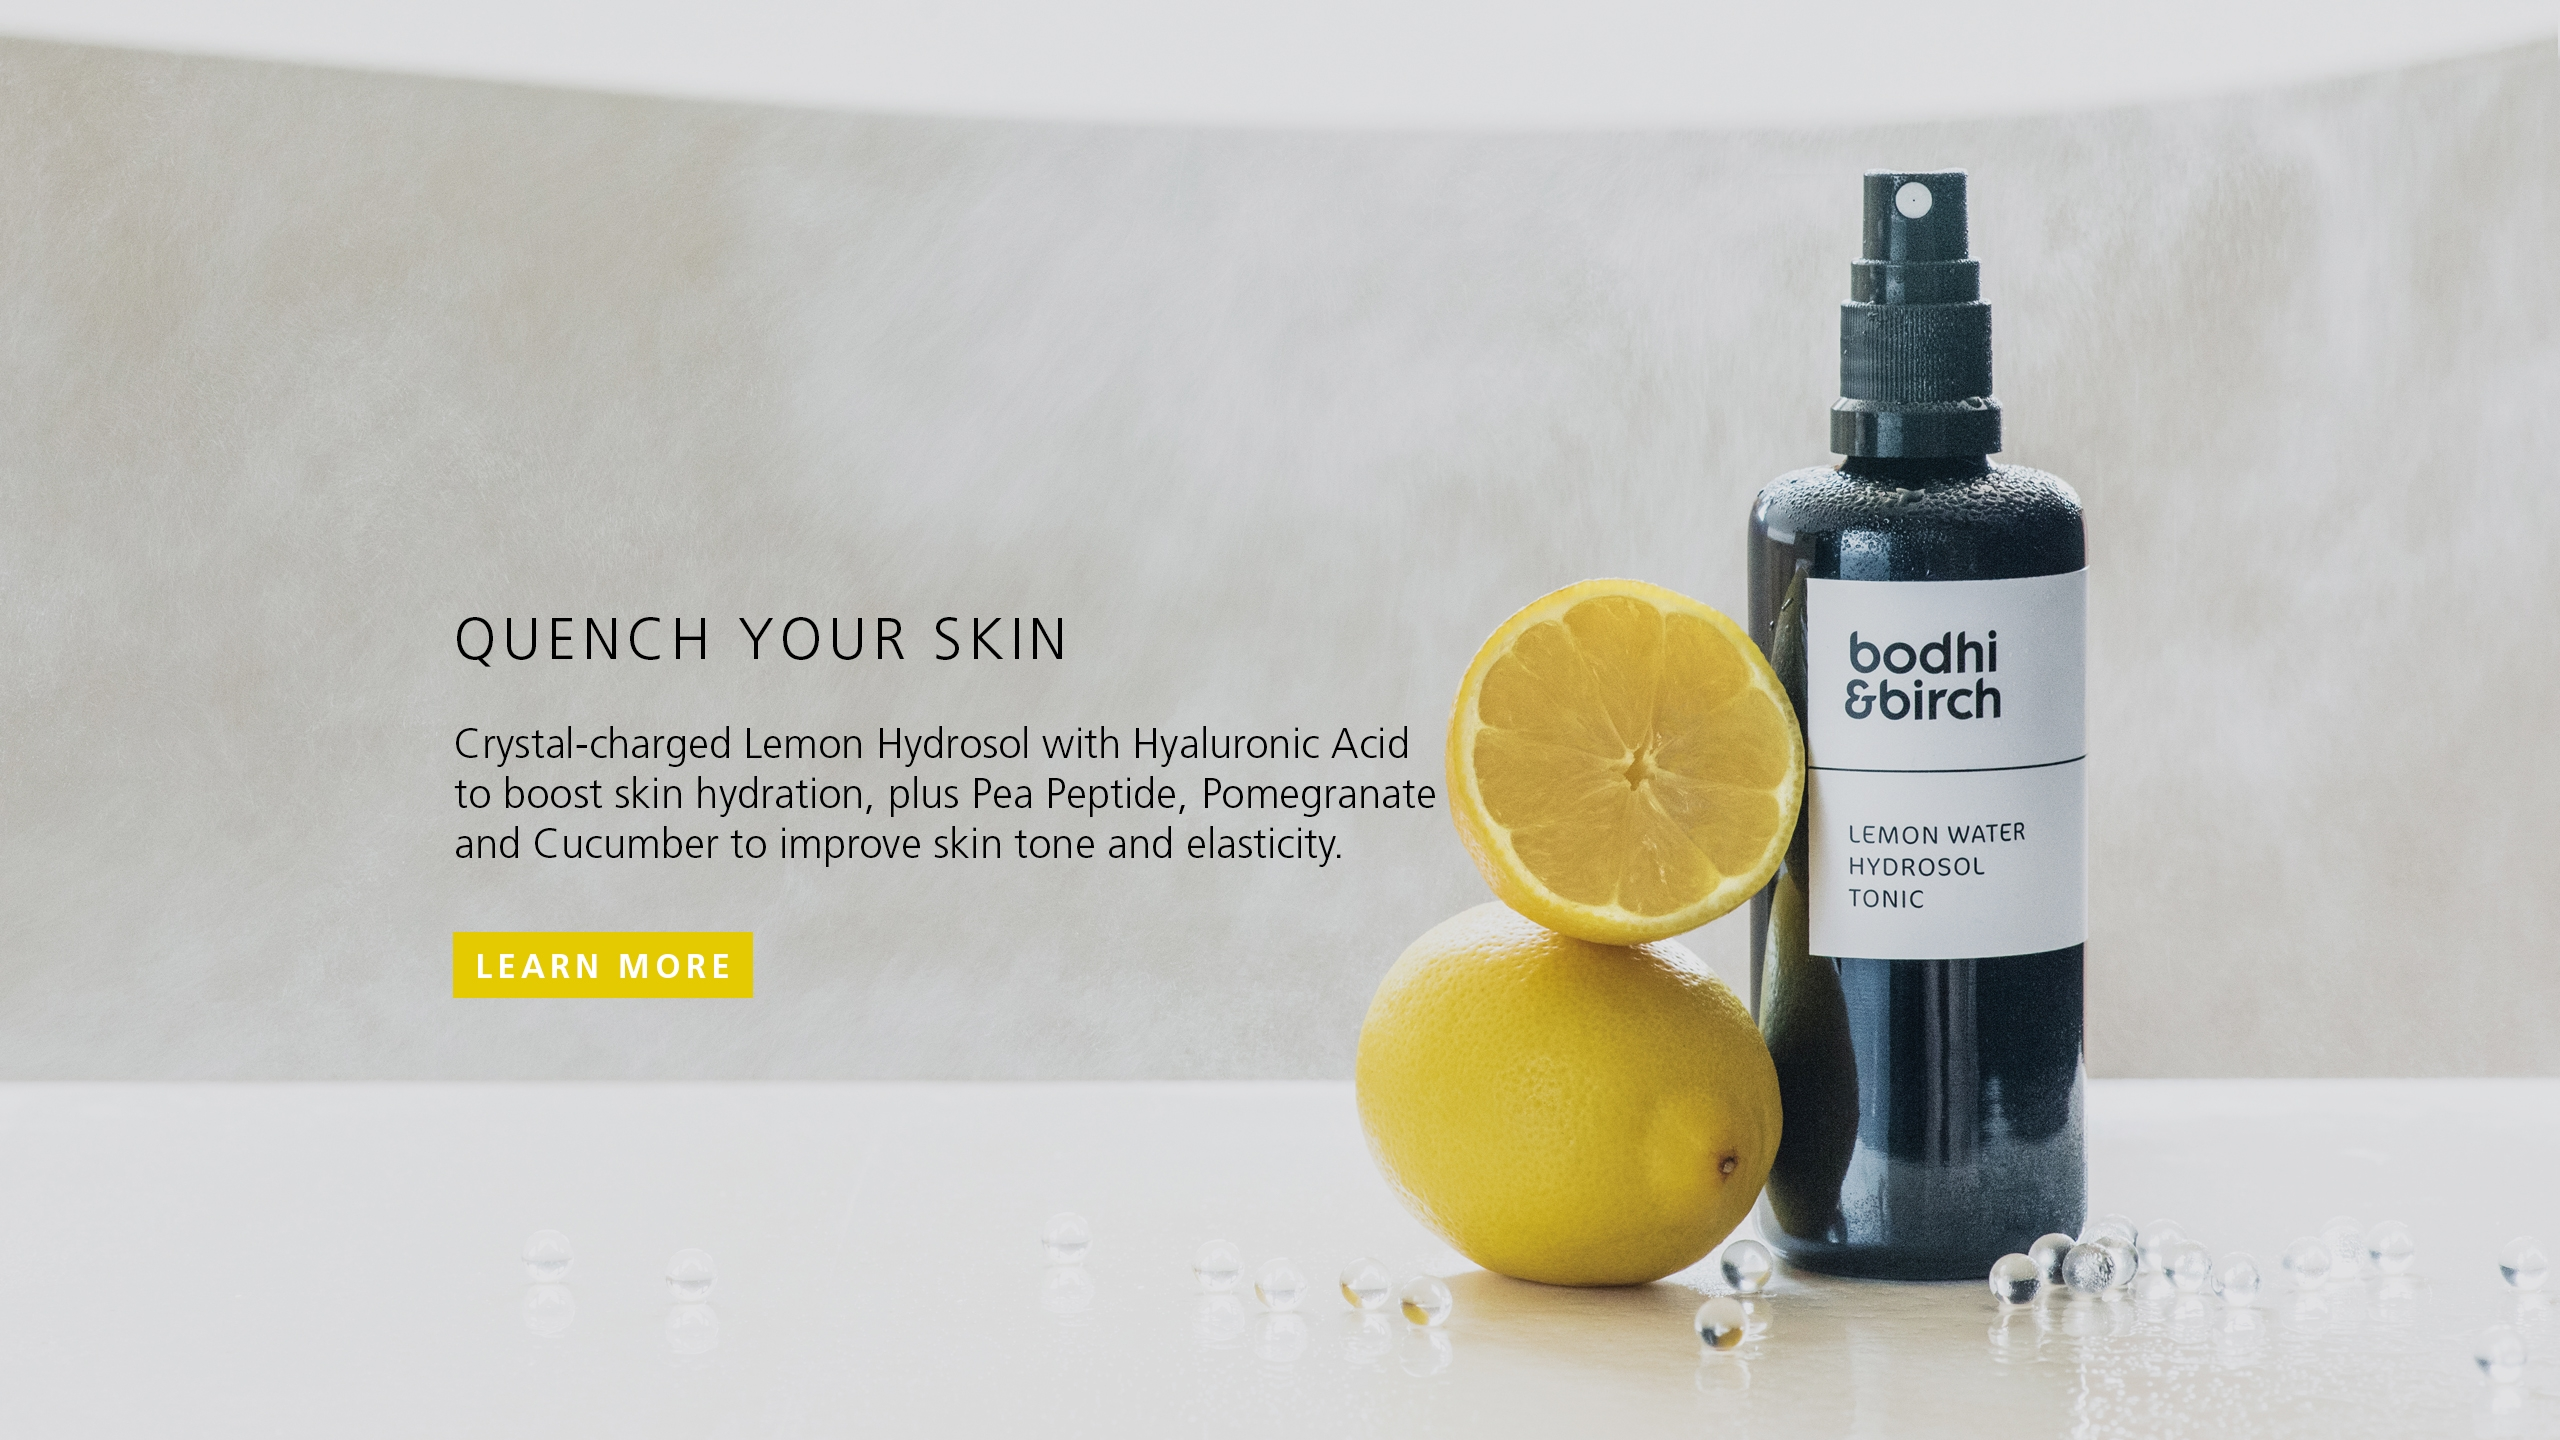 Quench your Skin